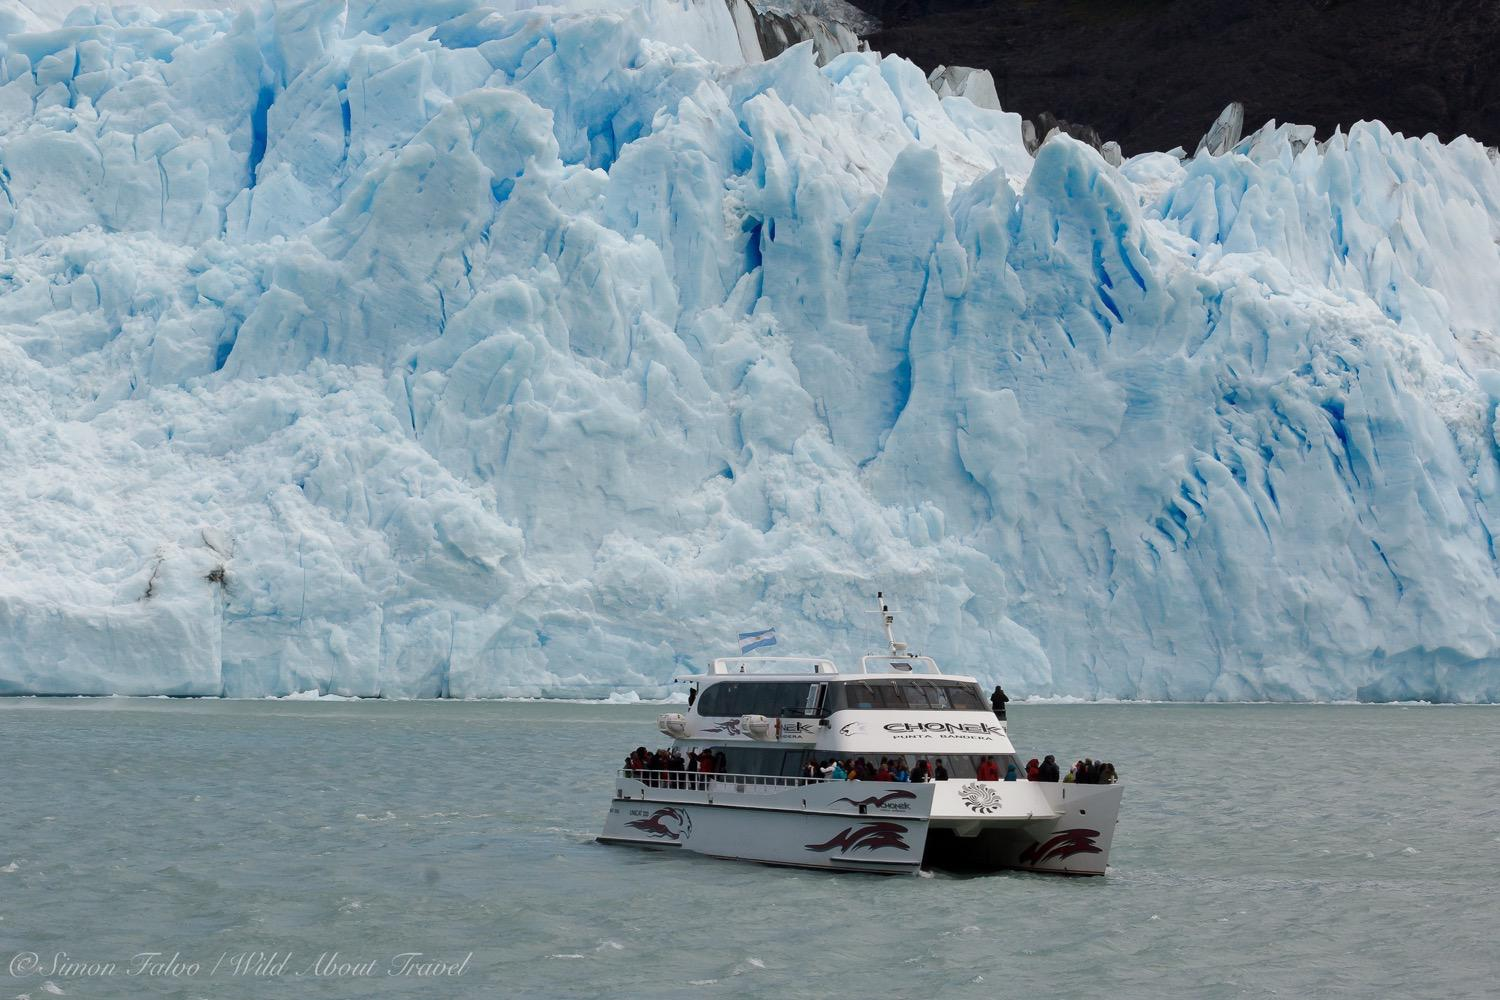 Argentina, The Boat to Upsala and Spegazzini Glaciers